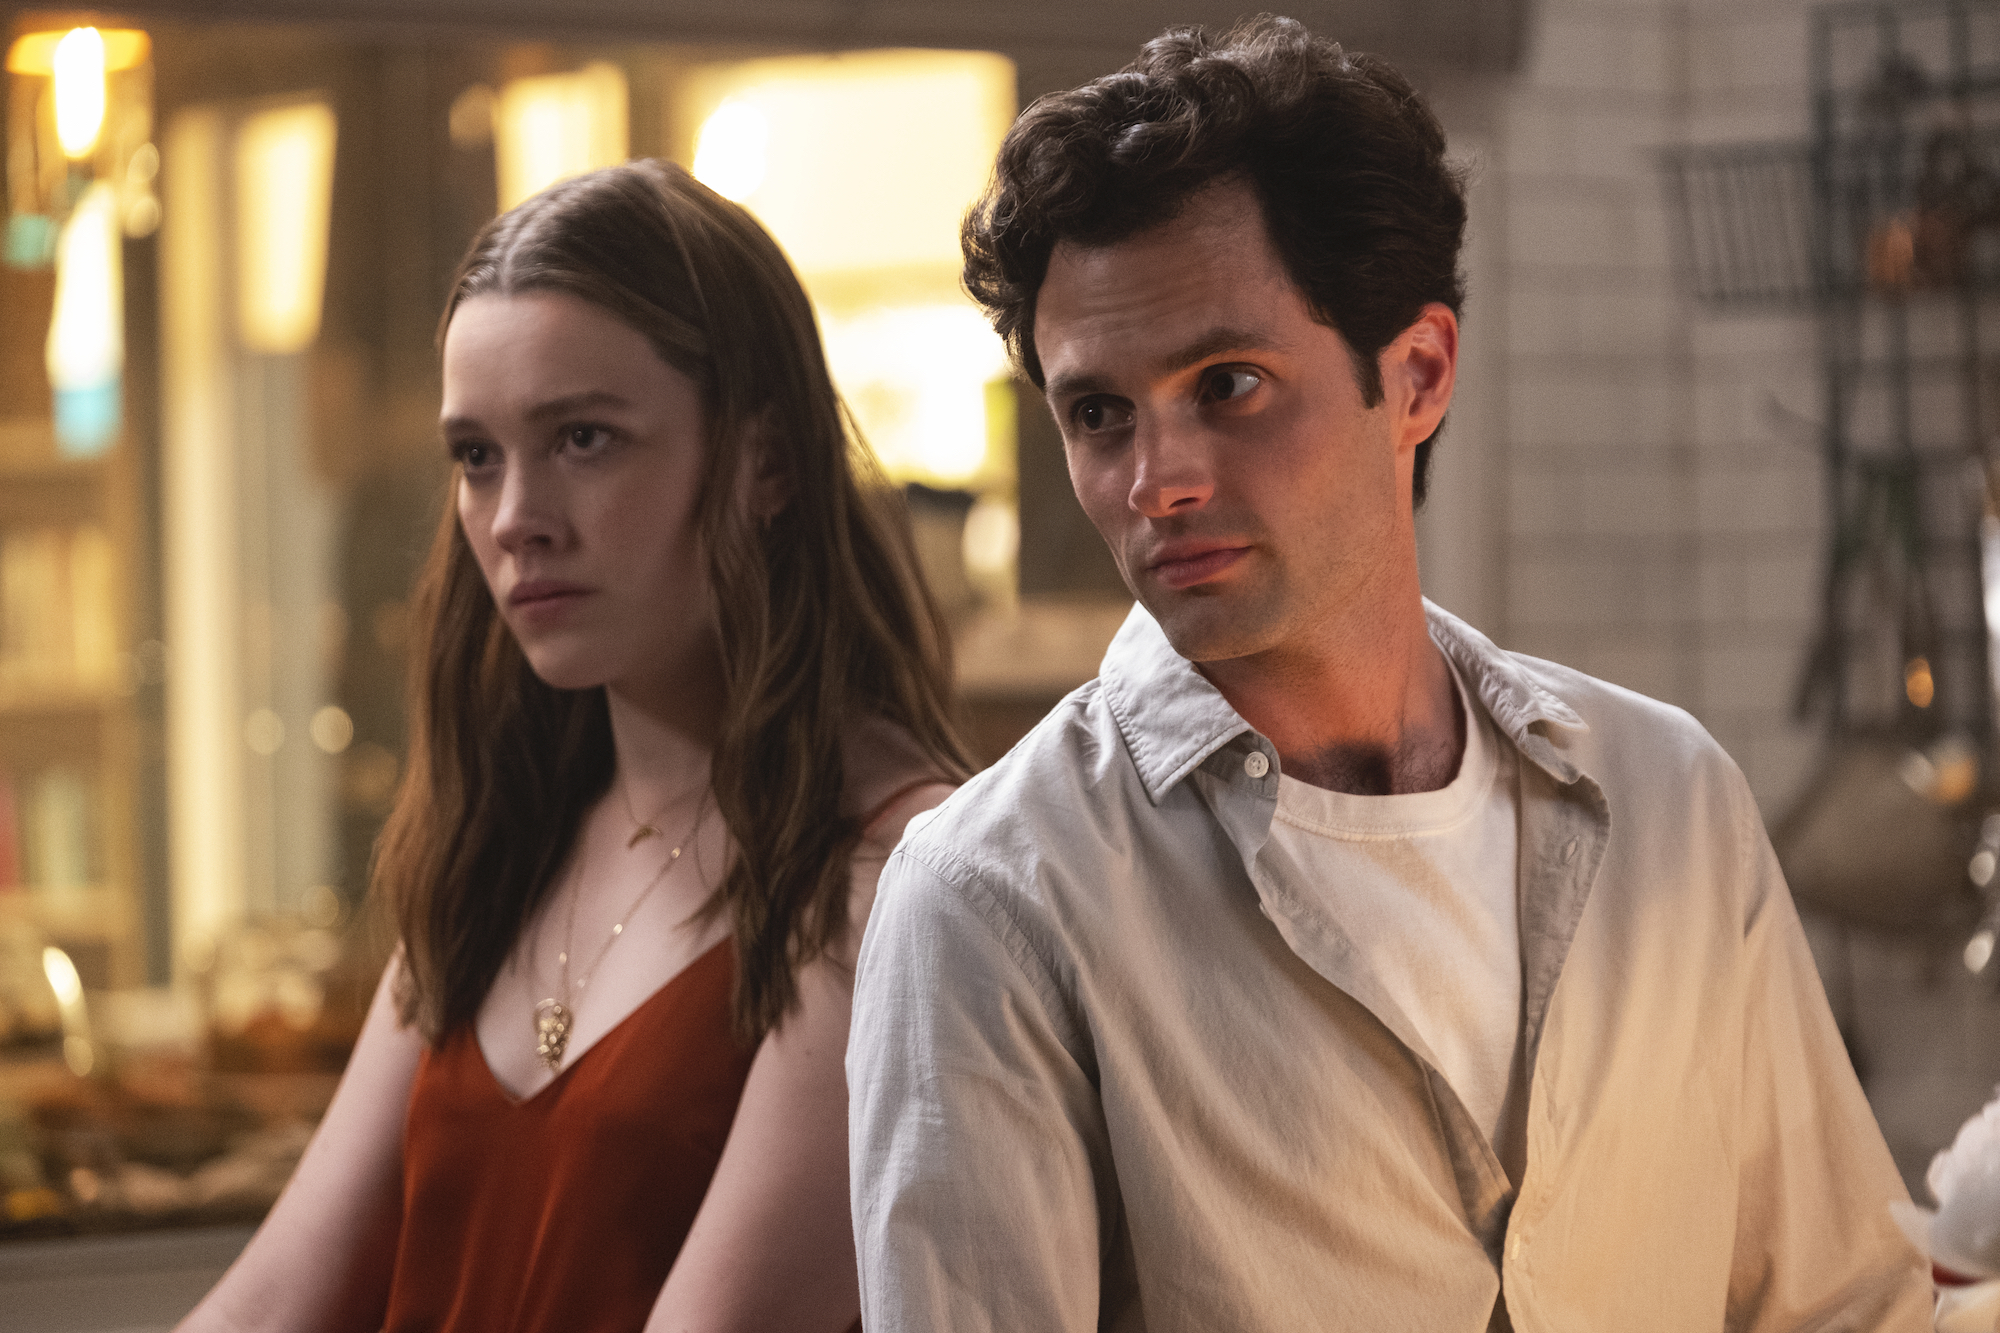 Love Quinn (Victoria Pedretti) and Joe Goldberg (Penn Badgley) on 'YOU' Season 2.